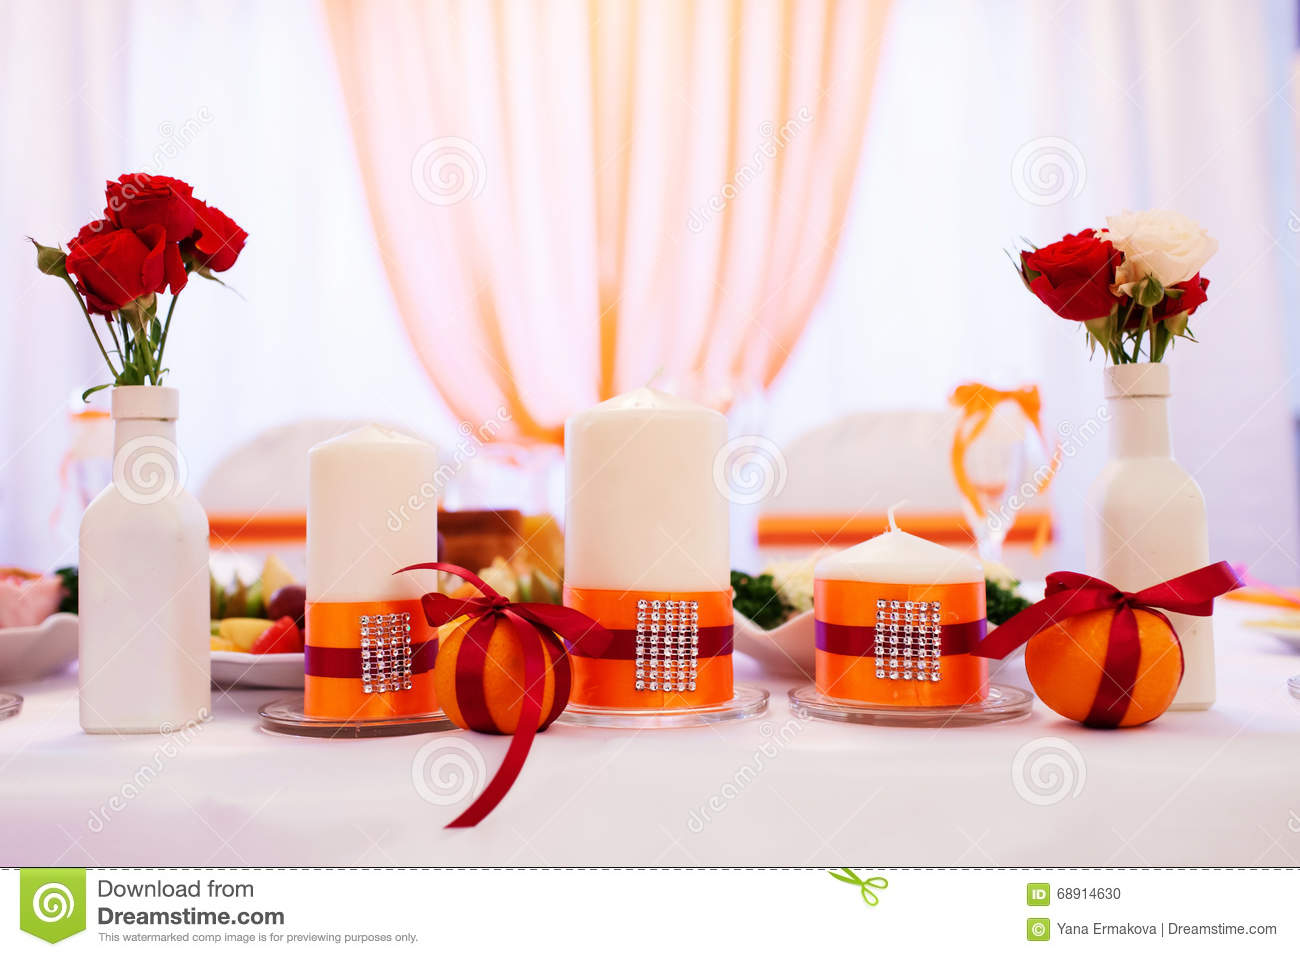 Wedding Candles On Restaurant Table Stock Photo Image Of Candle - Restaurant table candles